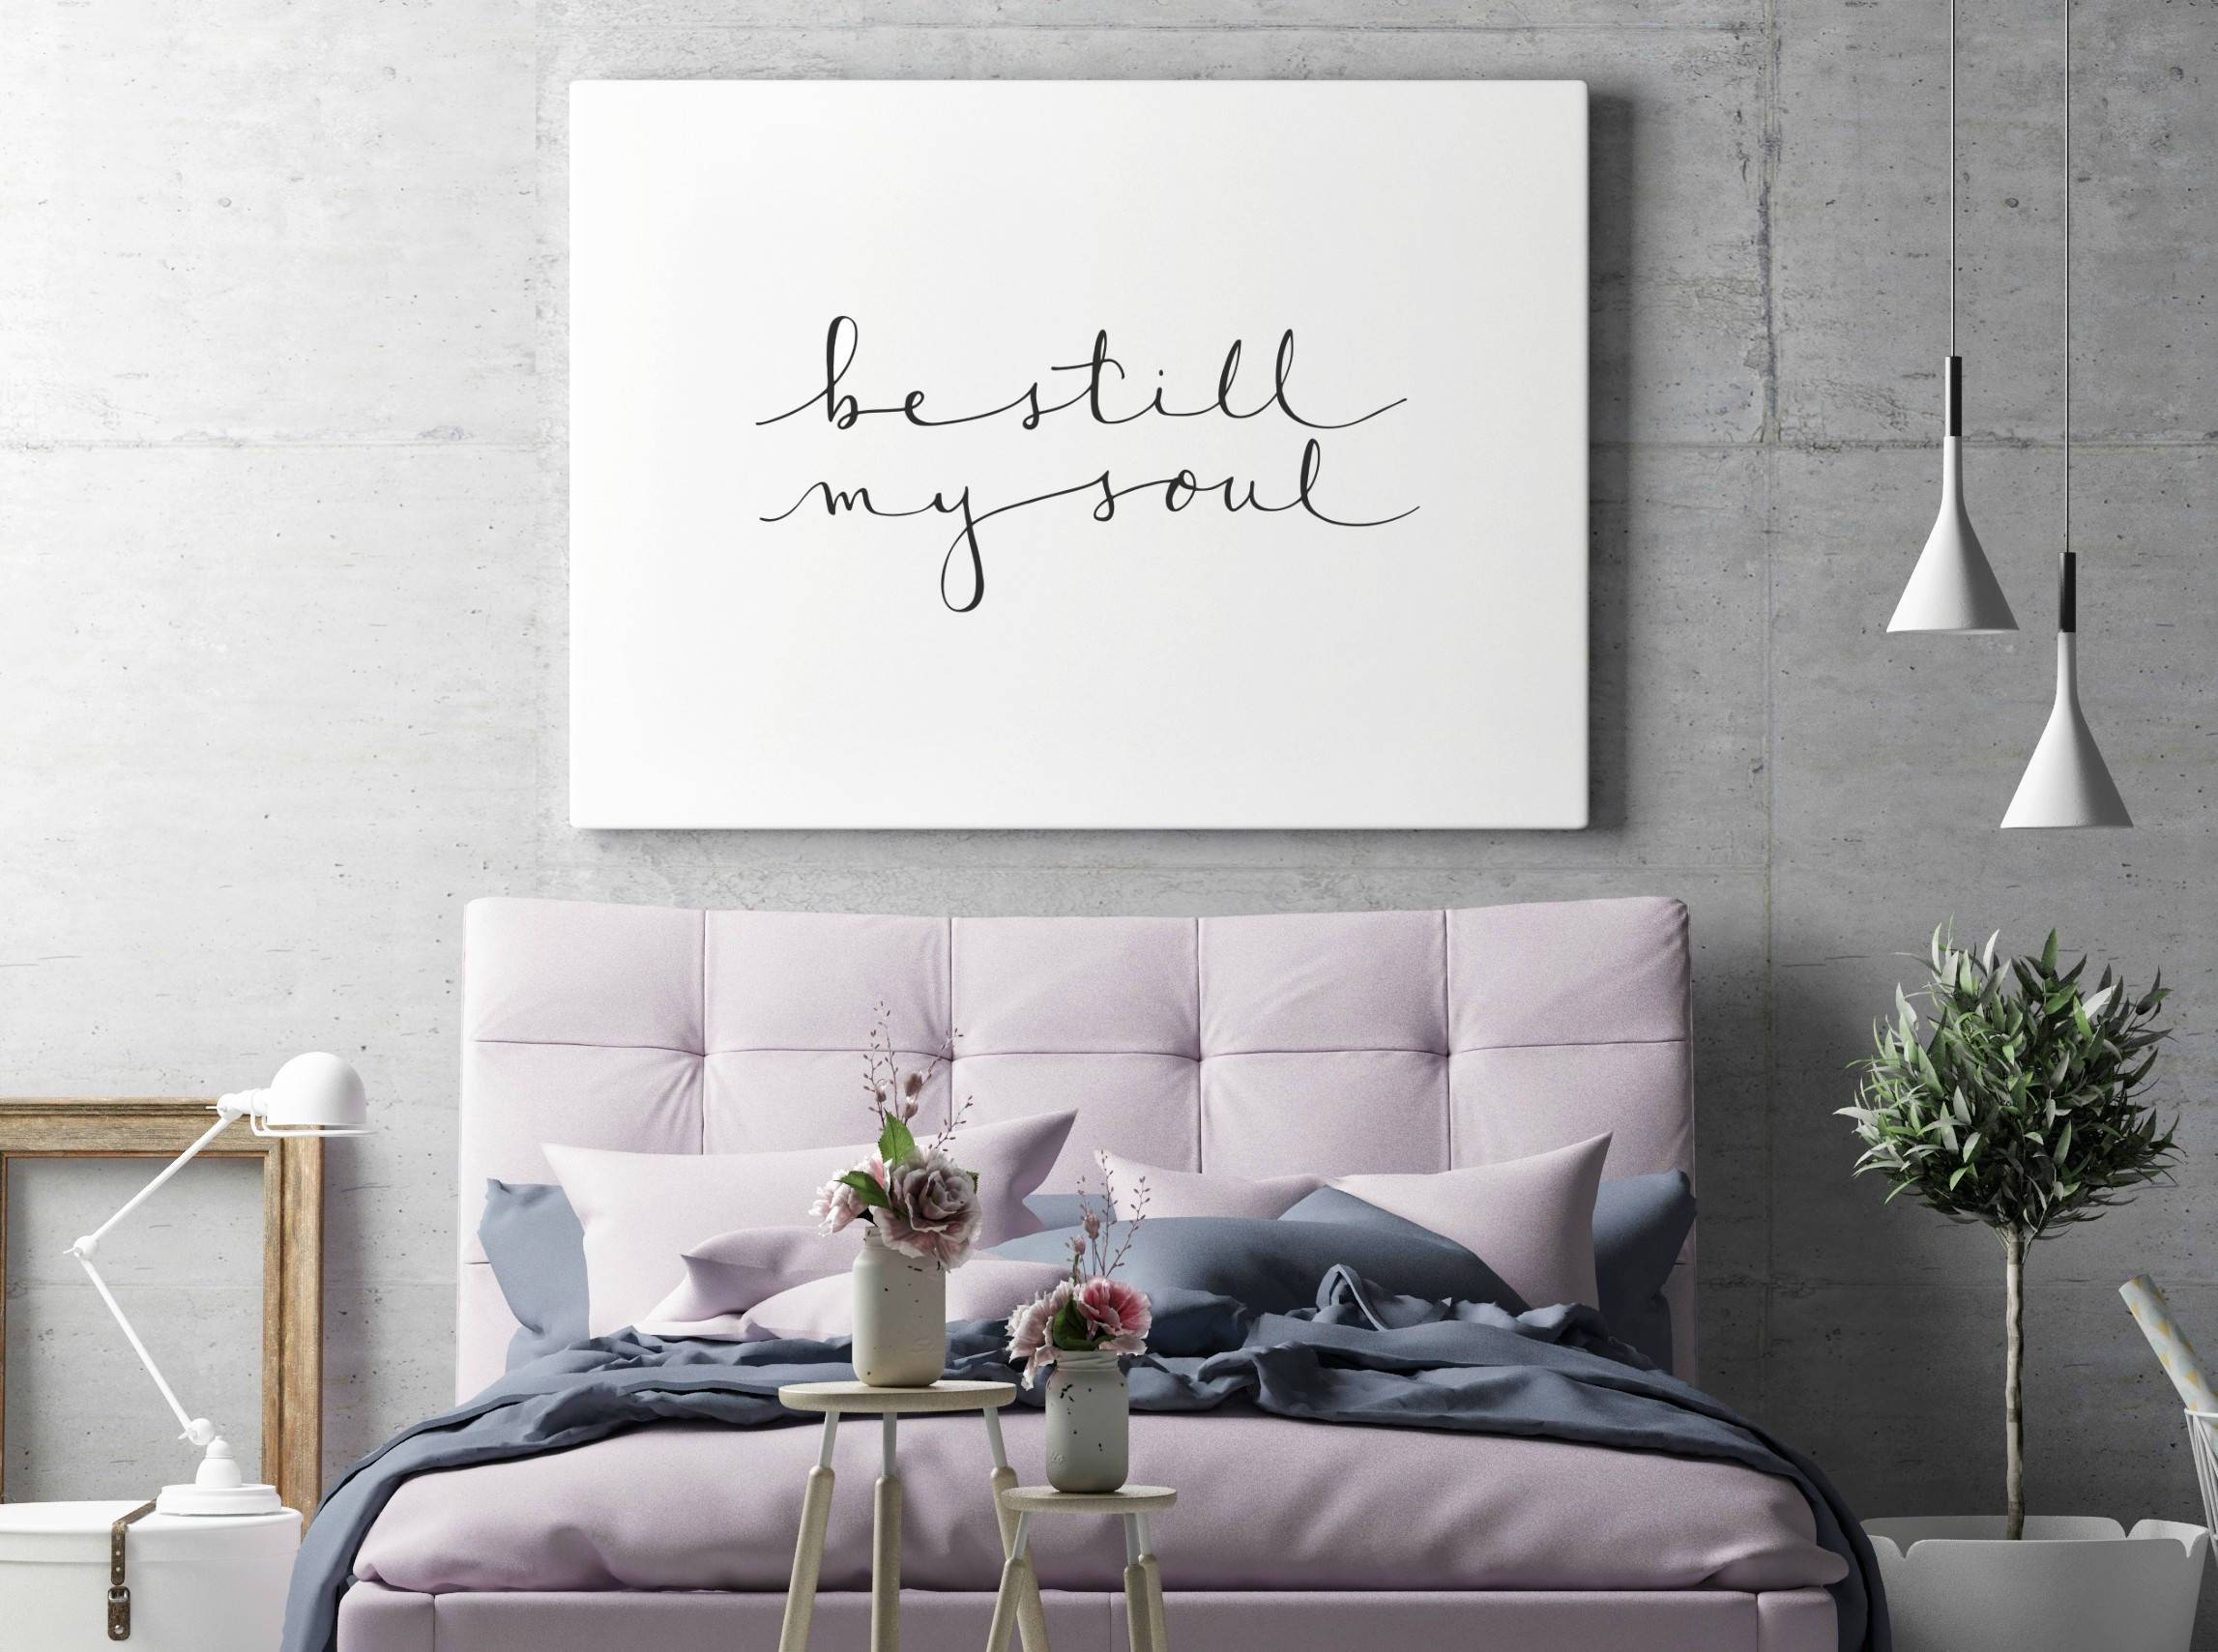 Bedroom Design : Wonderful Wall Art Stickers Nursery Wall Stickers Inside Most Up To Date Bedroom 3D Wall Art (View 20 of 20)